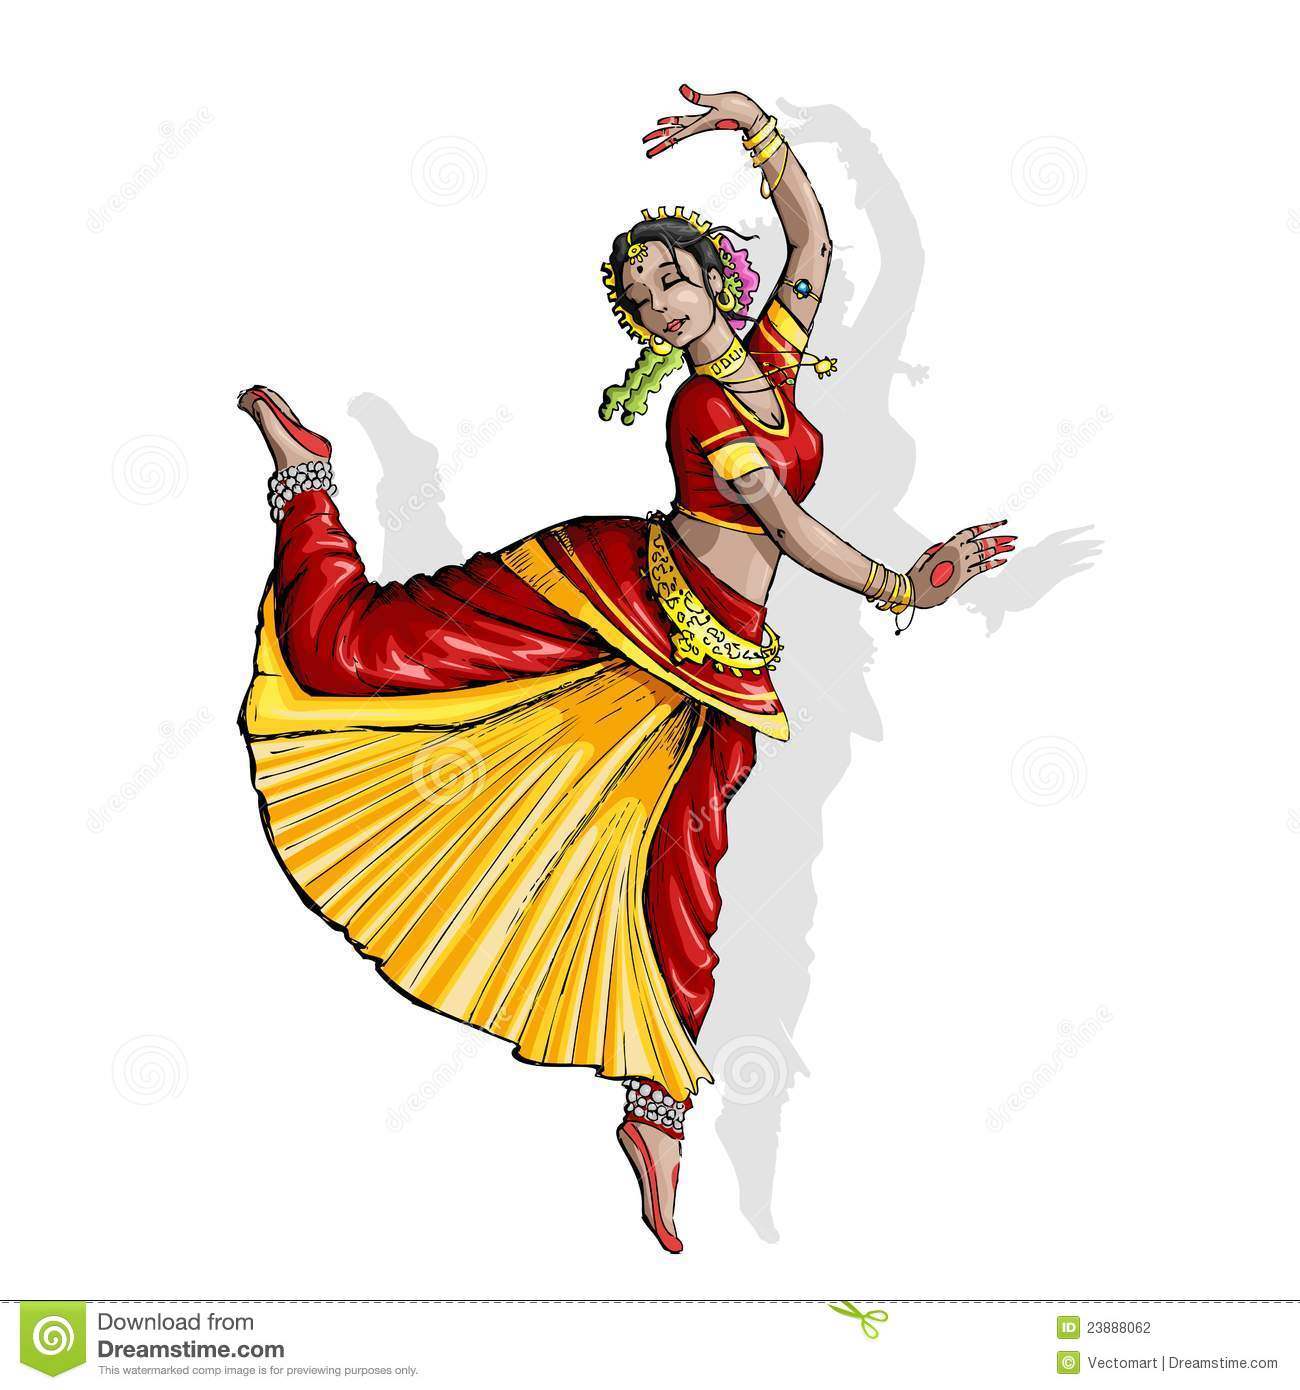 Royalty Free Bollywood Dancing Clip Art, Vector Images ... |Bollywood Dancer Clipart